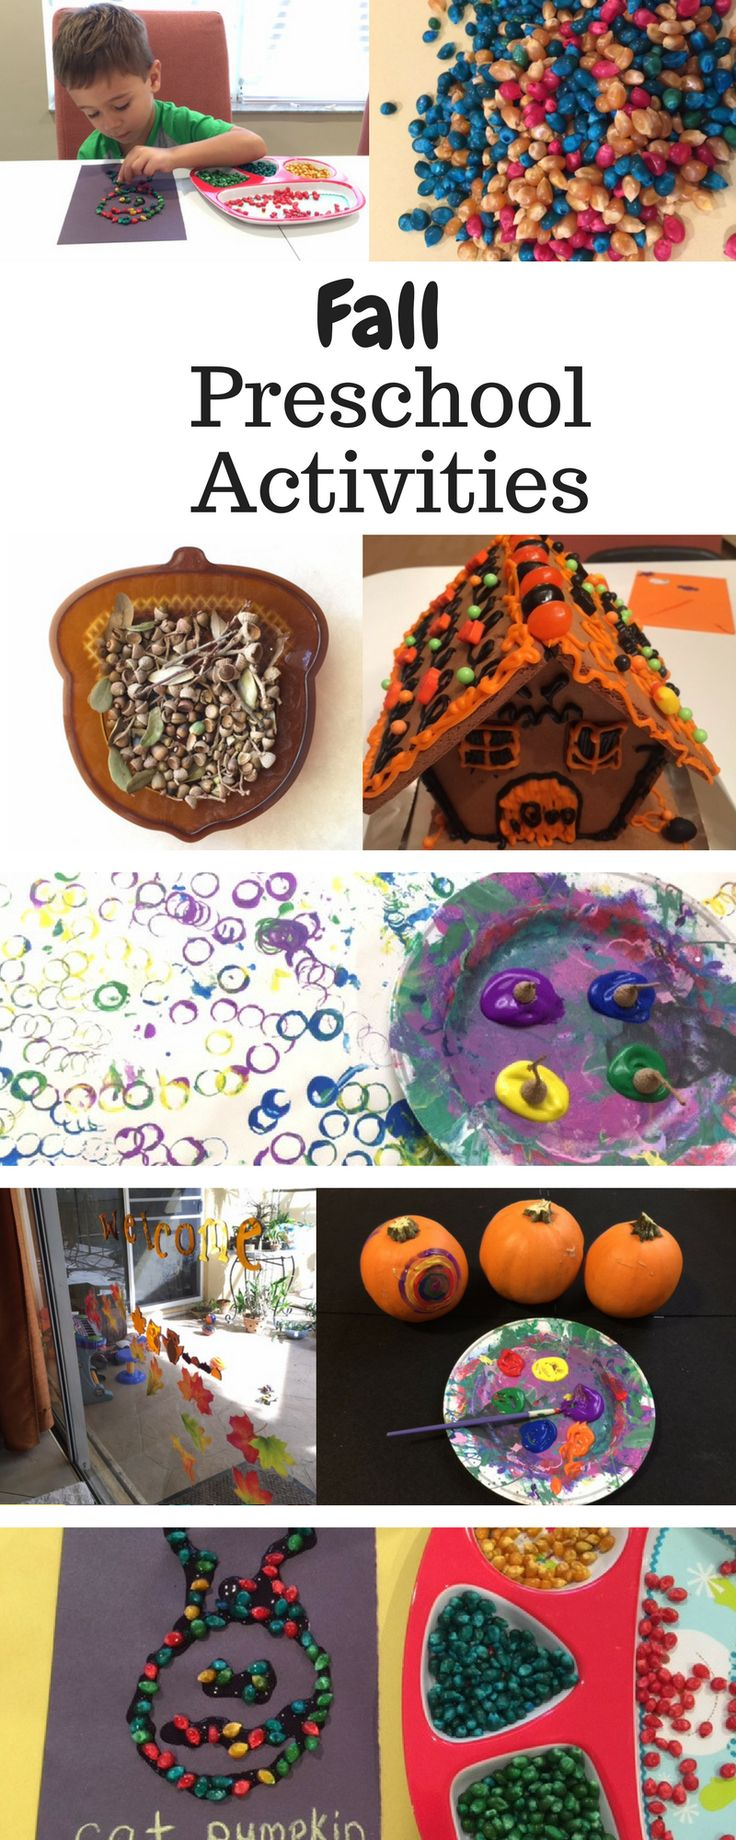 Fall and Halloween activities to do with toddlers or preschoolers to welcome the new season. Simple craft ideas for fall. Pumpkin painting, corn kernel pictures, decorating the house, candy house, acorn stamping and collecting.